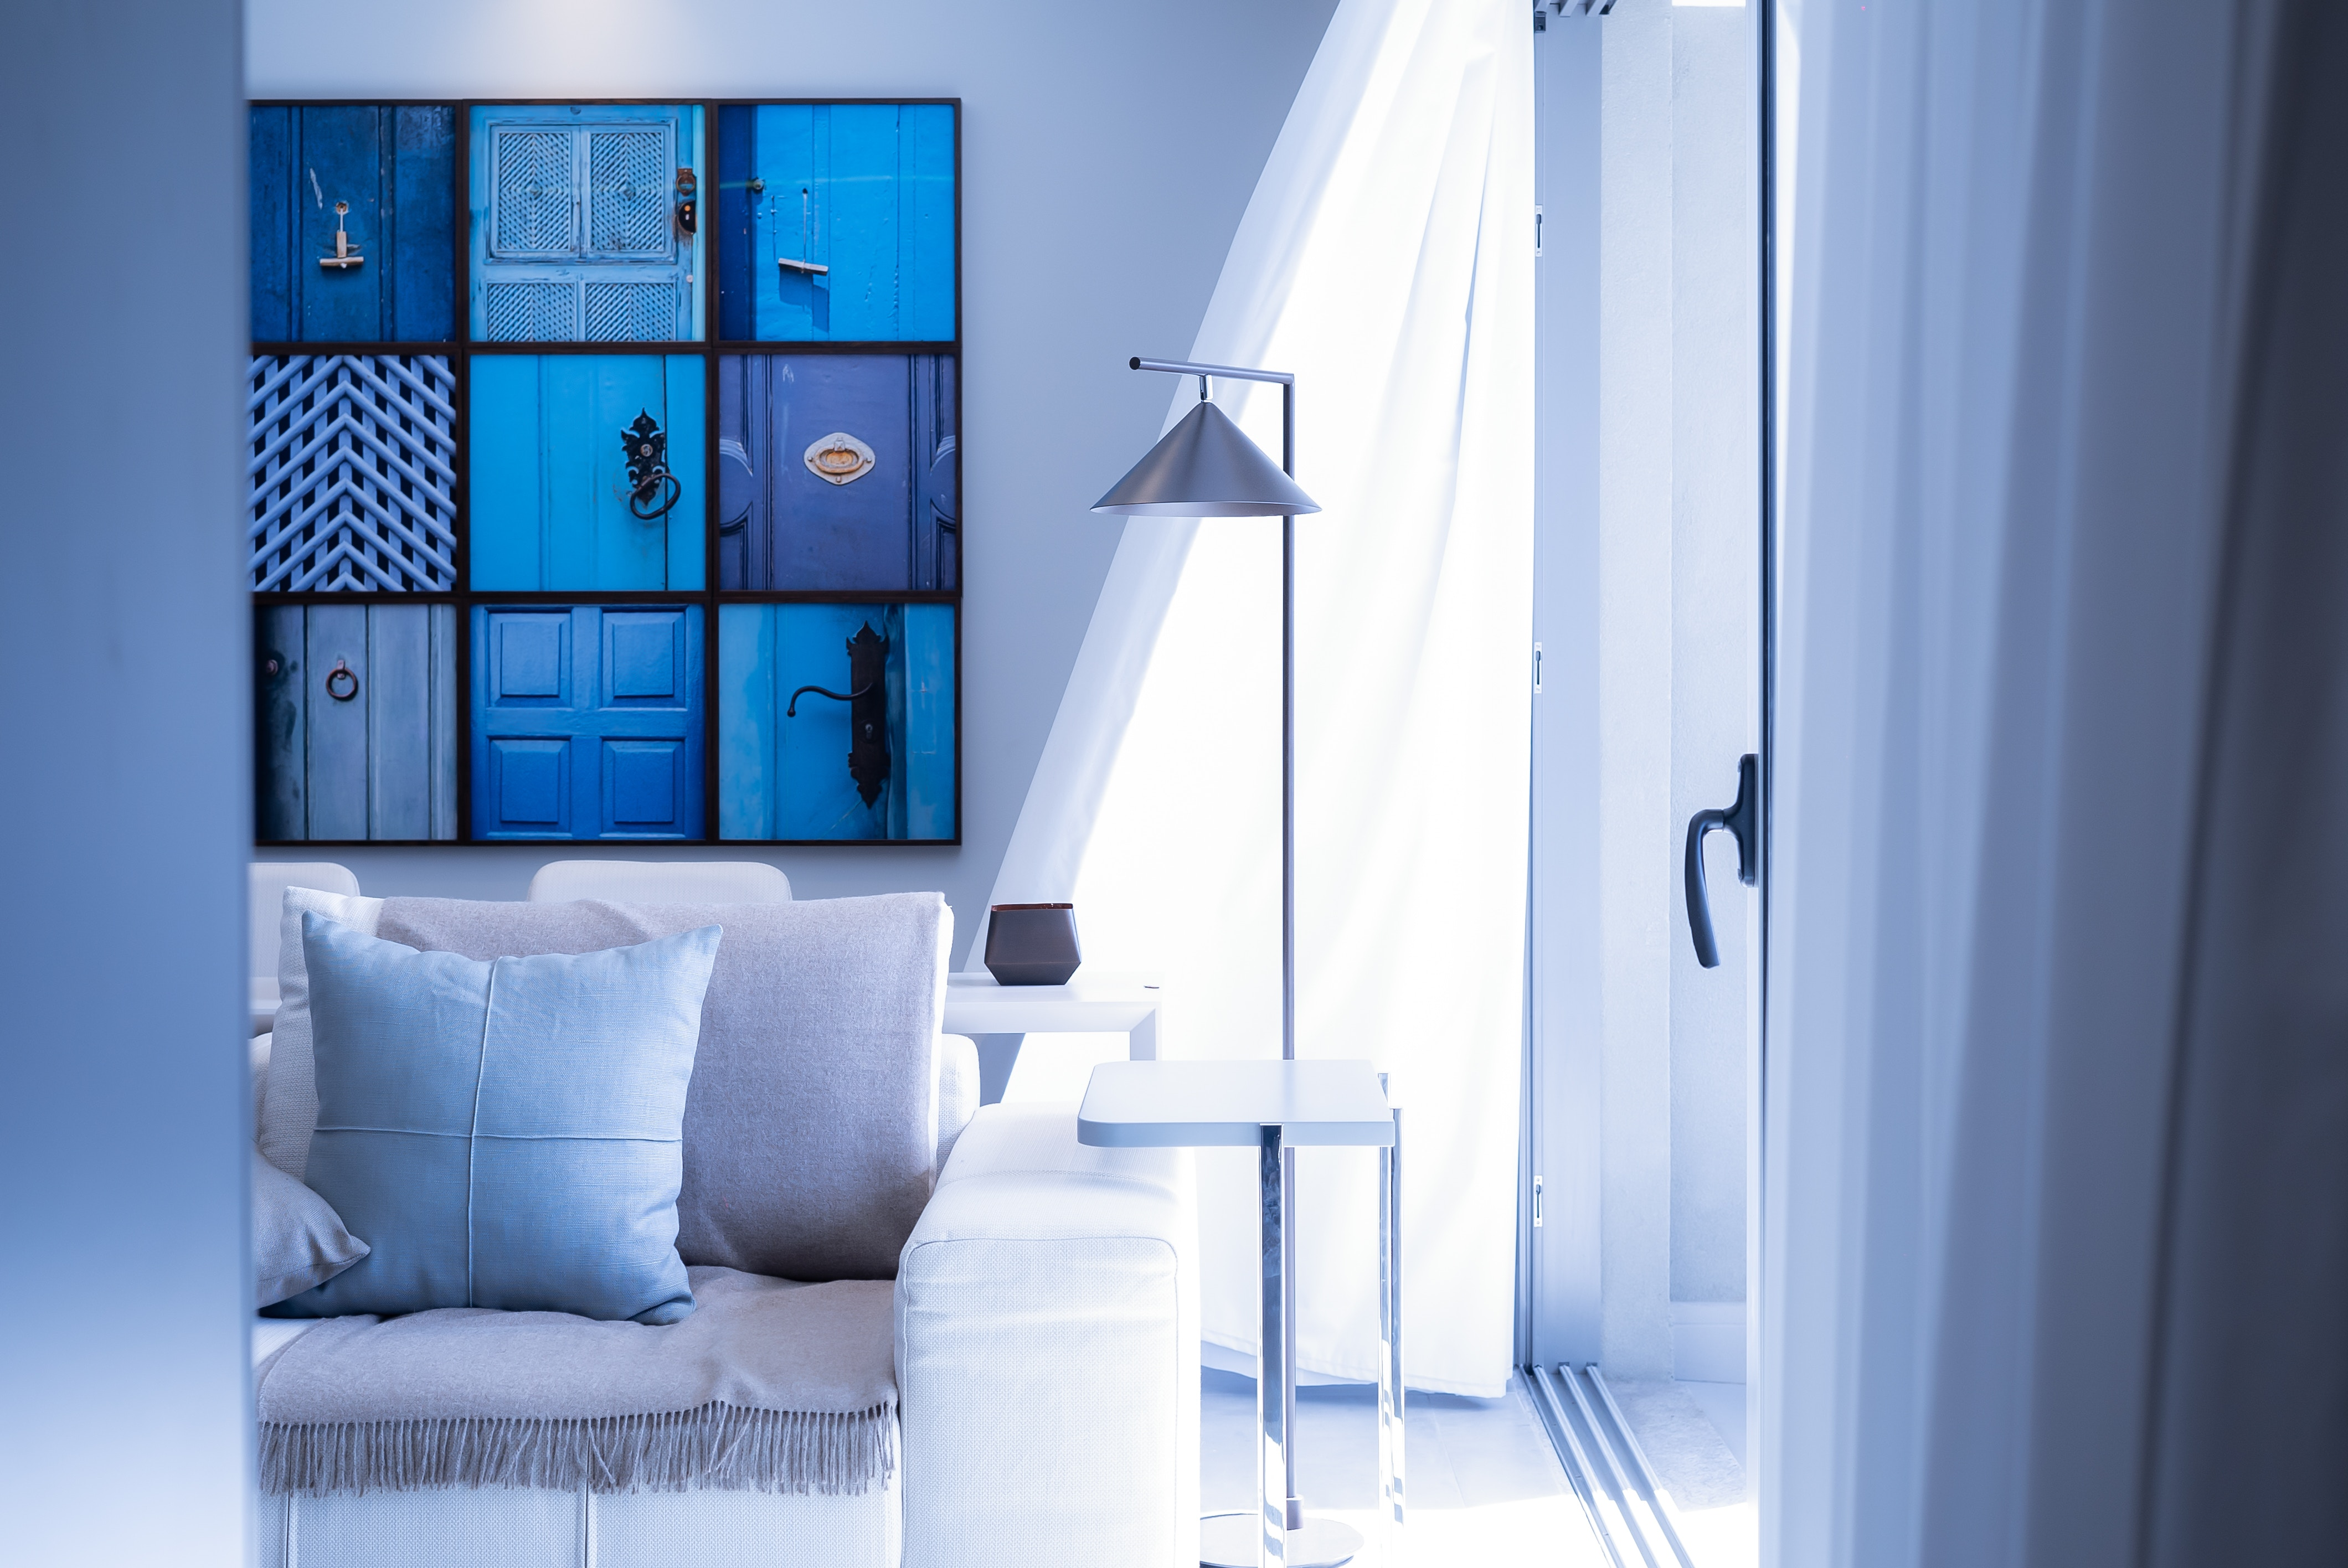 Tricks to Make Your Vacation Home Rental Decorating Feel Hotel-Like